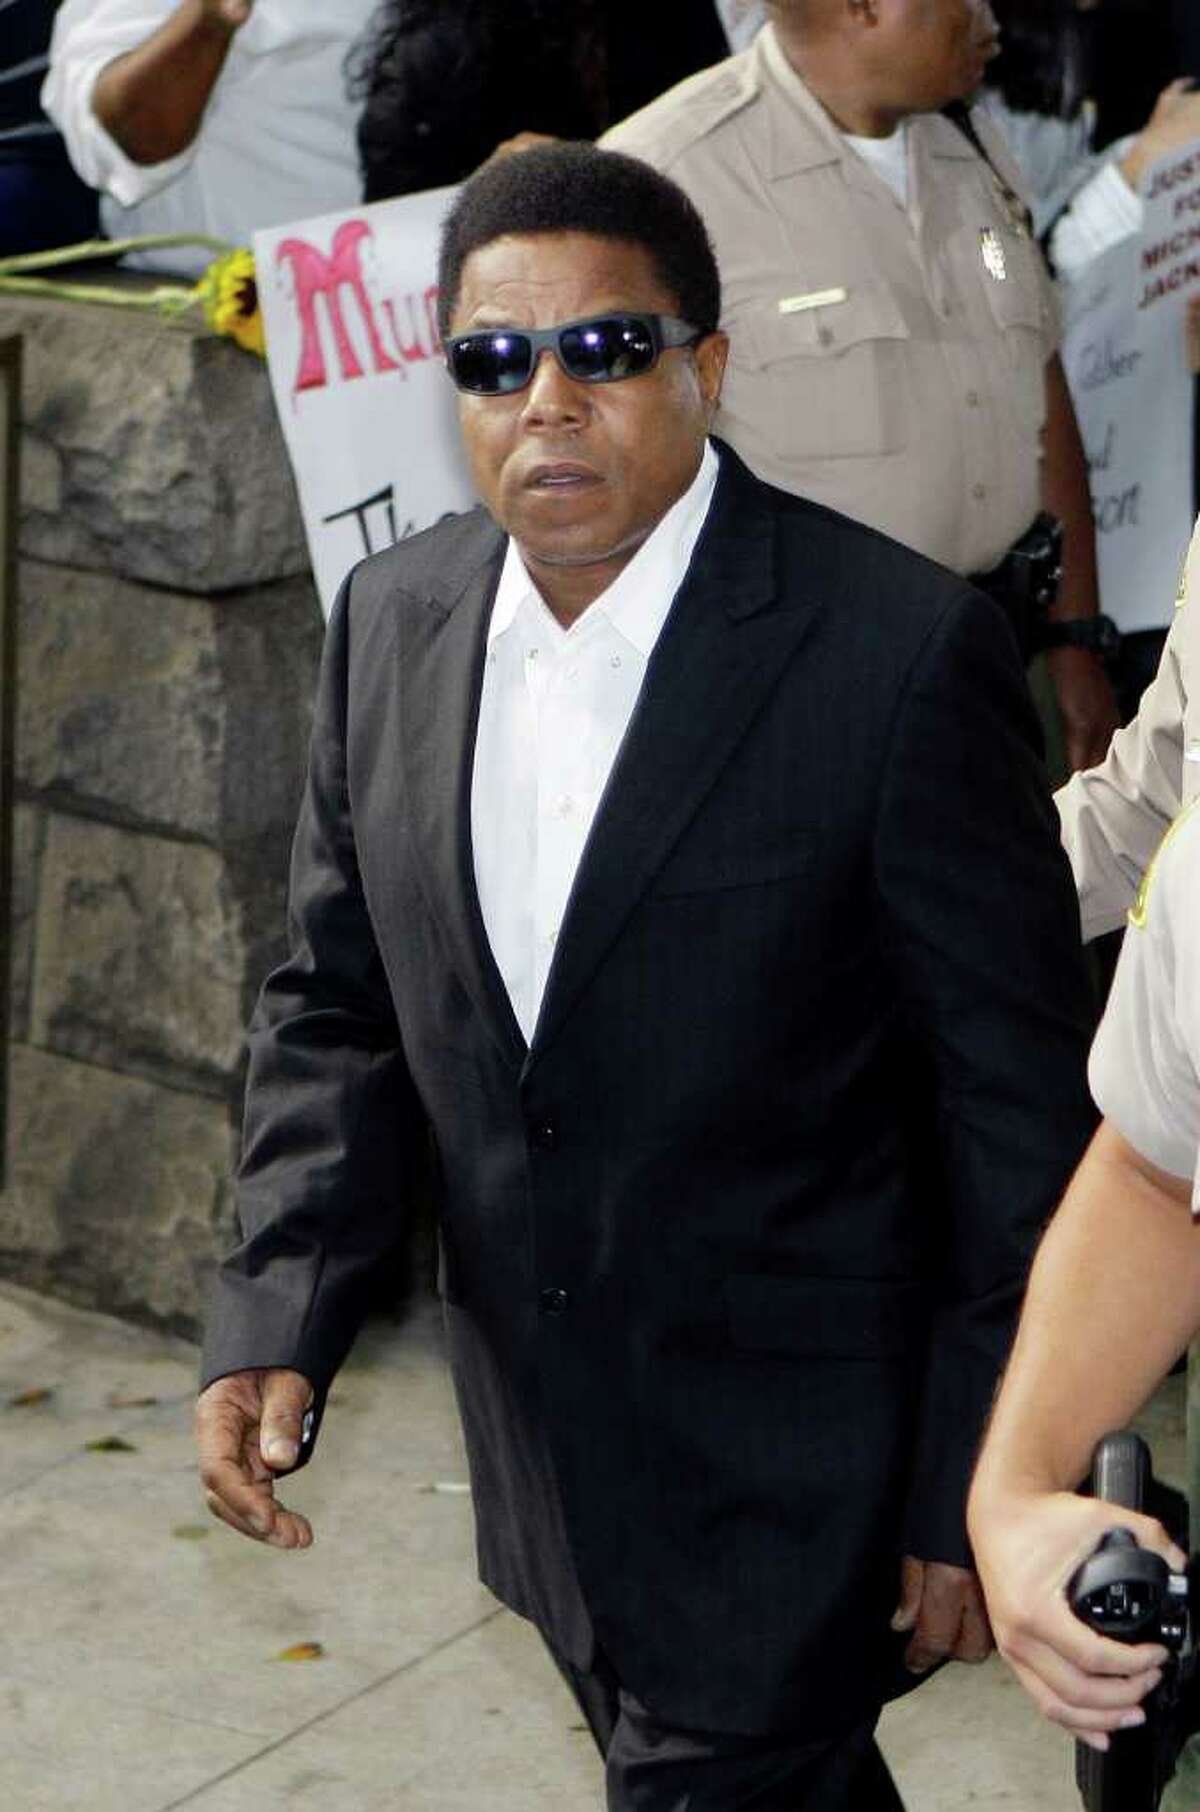 Michael Jackson's brother Tito Jackson arrives as the involuntary manslaughter trial for Dr. Conrad Murray, Jackson's personal physician when the pop star died, gets underway at the Criminal Justice Center in Los Angeles Tuesday, Sept. 27, 2011. Murray has pleaded not guilty and faces four years in prison and the loss of his medical license if convicted of involuntary manslaughter. (AP Photo/Reed Saxon)